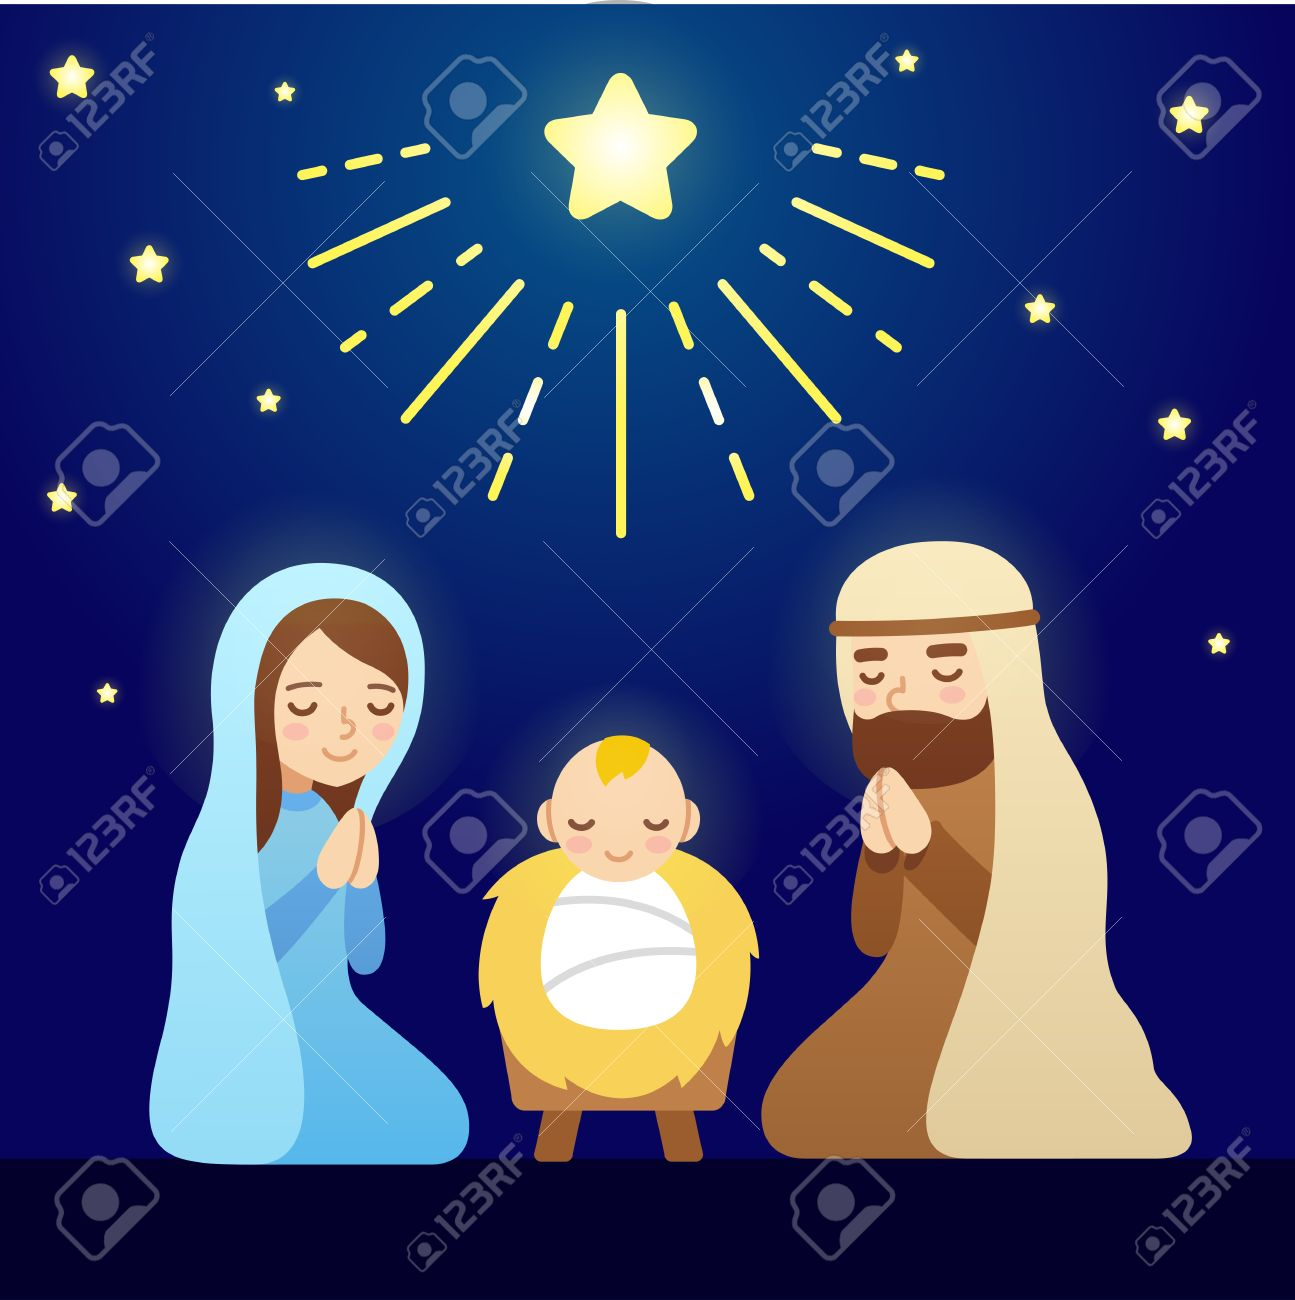 Christmas Nativity.Christmas Nativity Scene With Baby Jesus Mary And Joseph Under